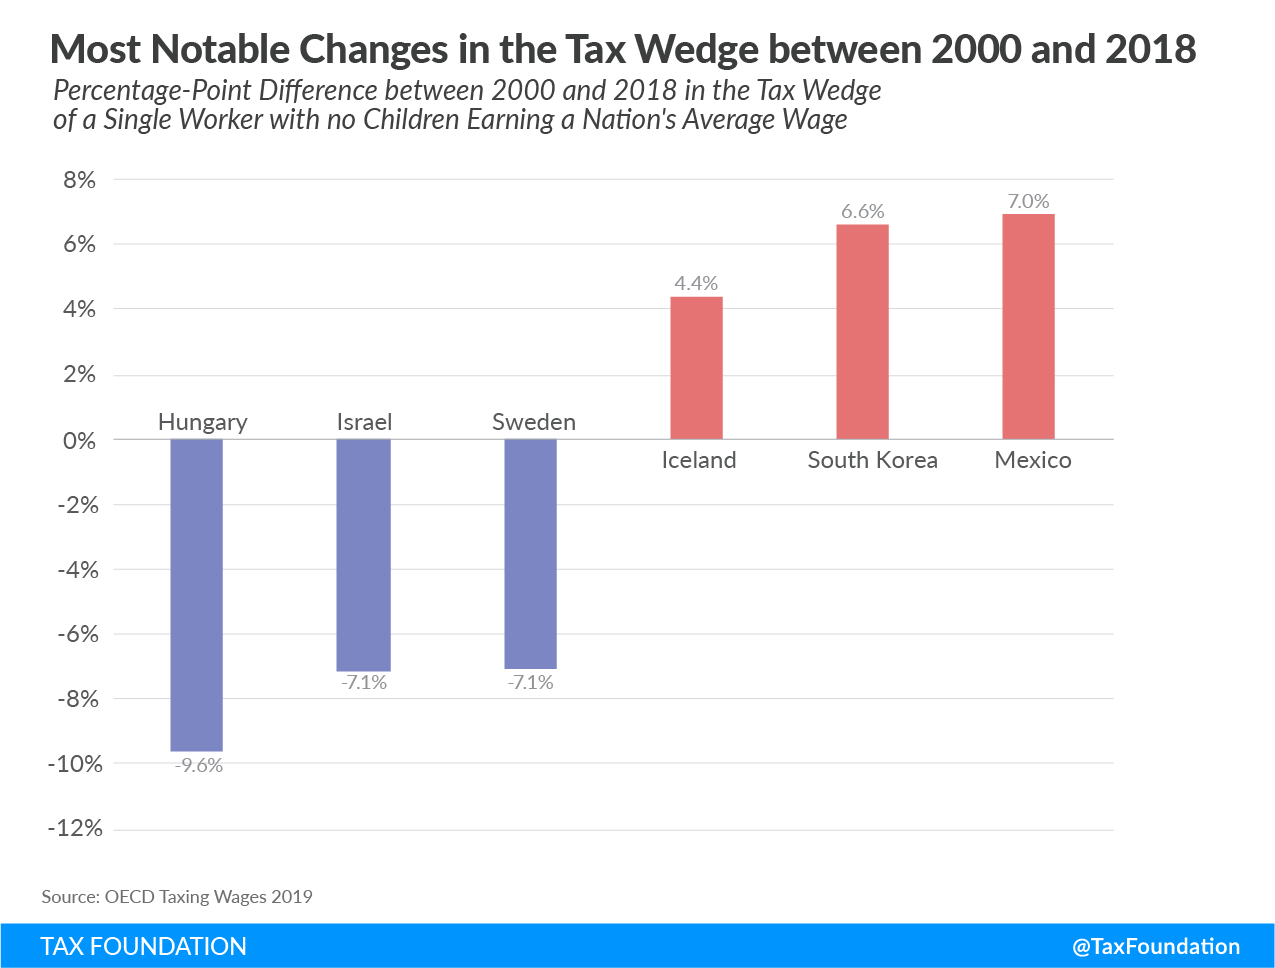 Most notable changes in the tax wedge between 2000 and 2018. OECD tax wedge OECD tax burden